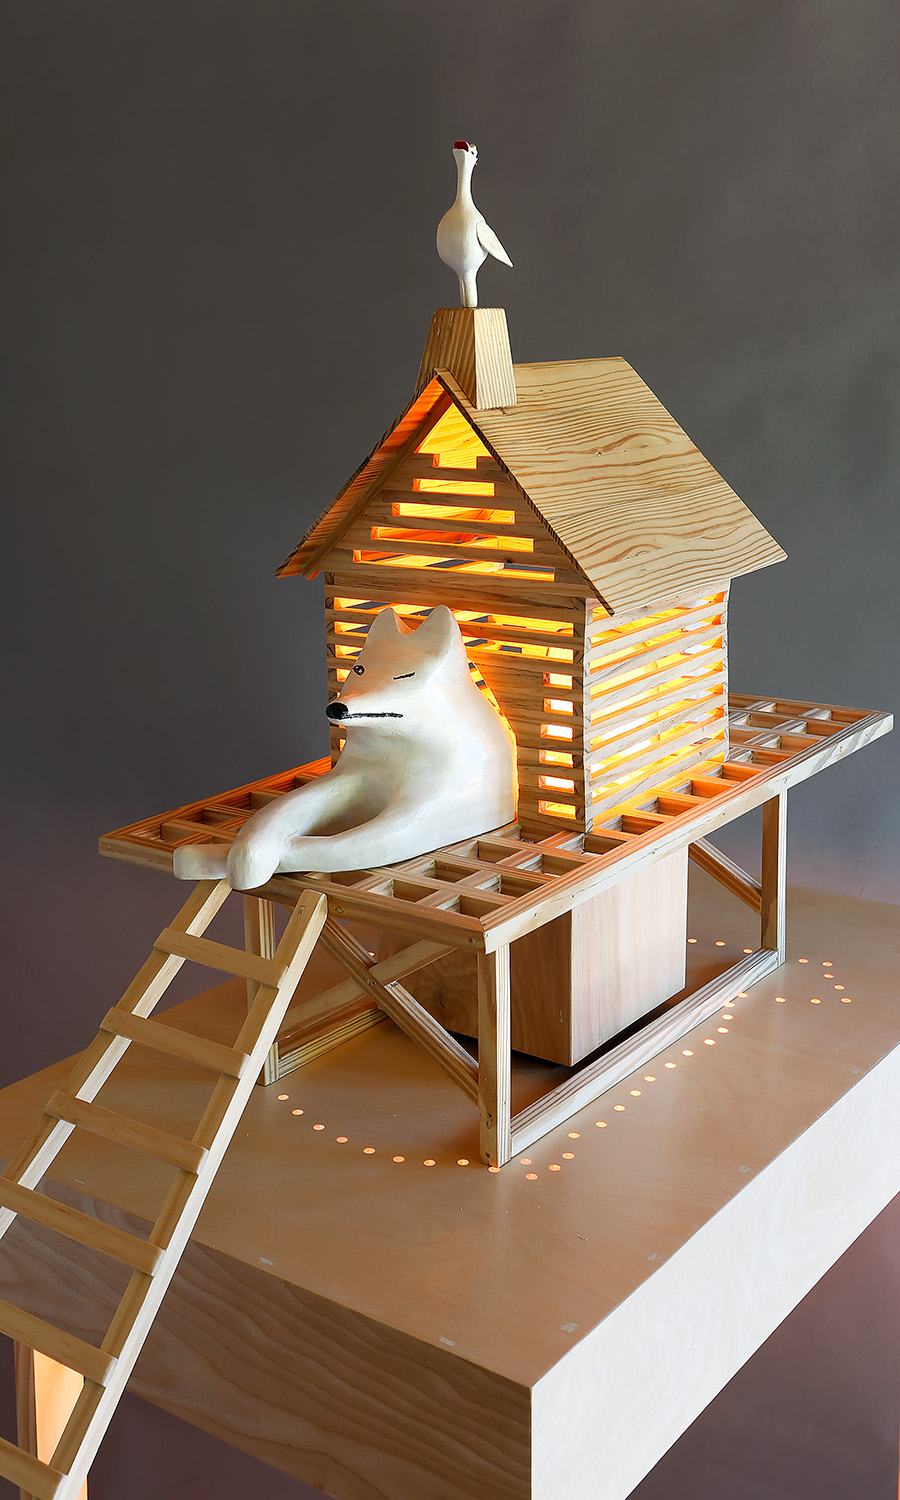 """Fox in a Hen House"", 69"" h x 17"" w x 36"" d; wood, stain, paint, LED lights; © Tom Gormally 2018"